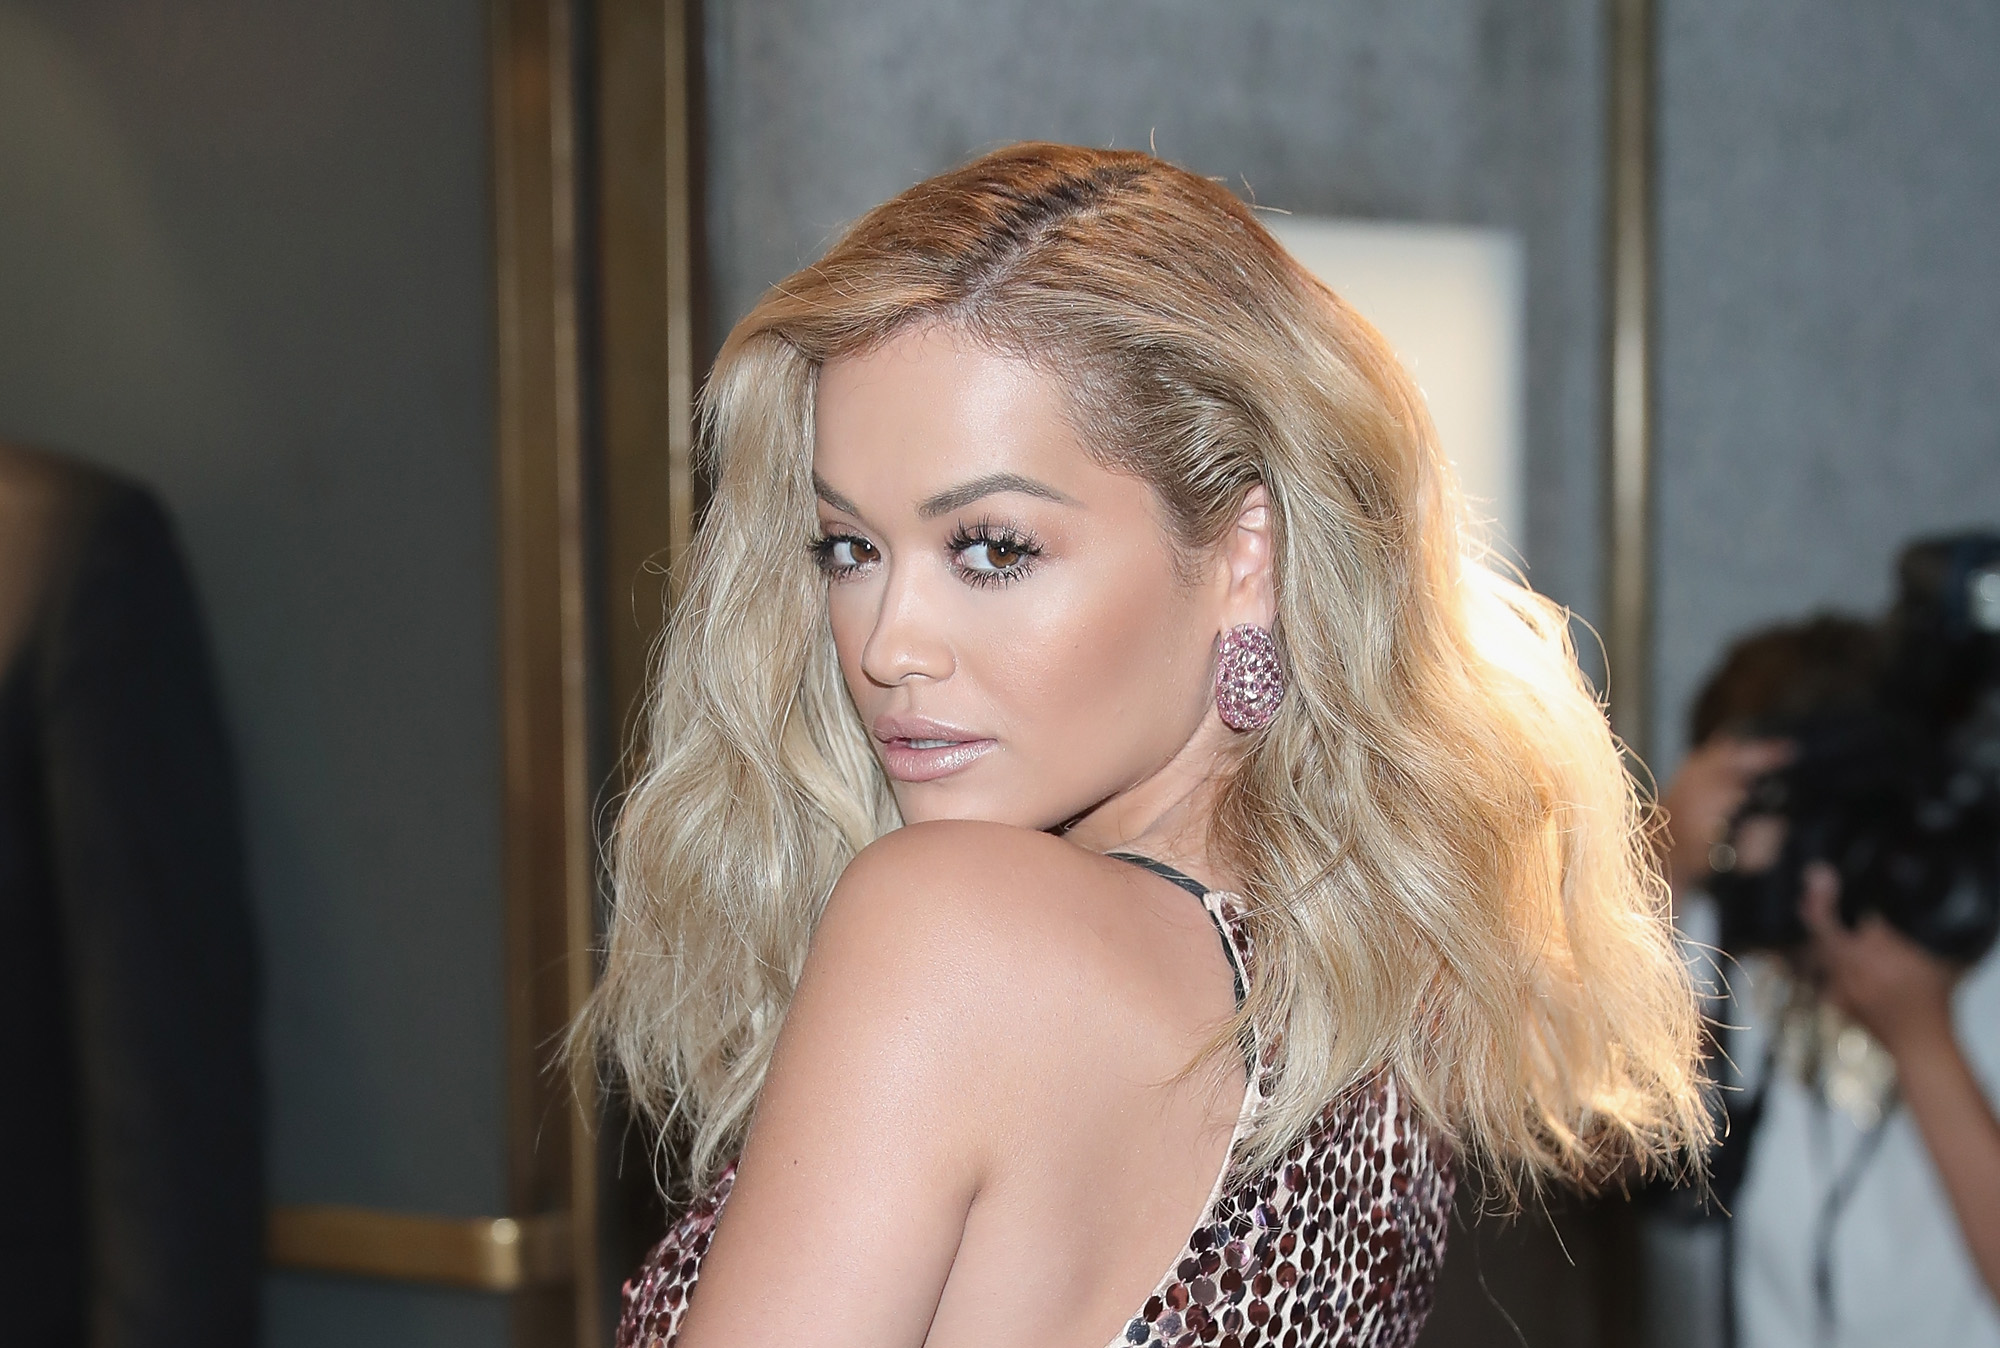 Rita Ora attends Tom Ford fashion show during New York Fashion Week September 2016 at 99E 52d St. on September 7, 2016 in New York City.  (Photo by Neilson Barnard/Getty Images)